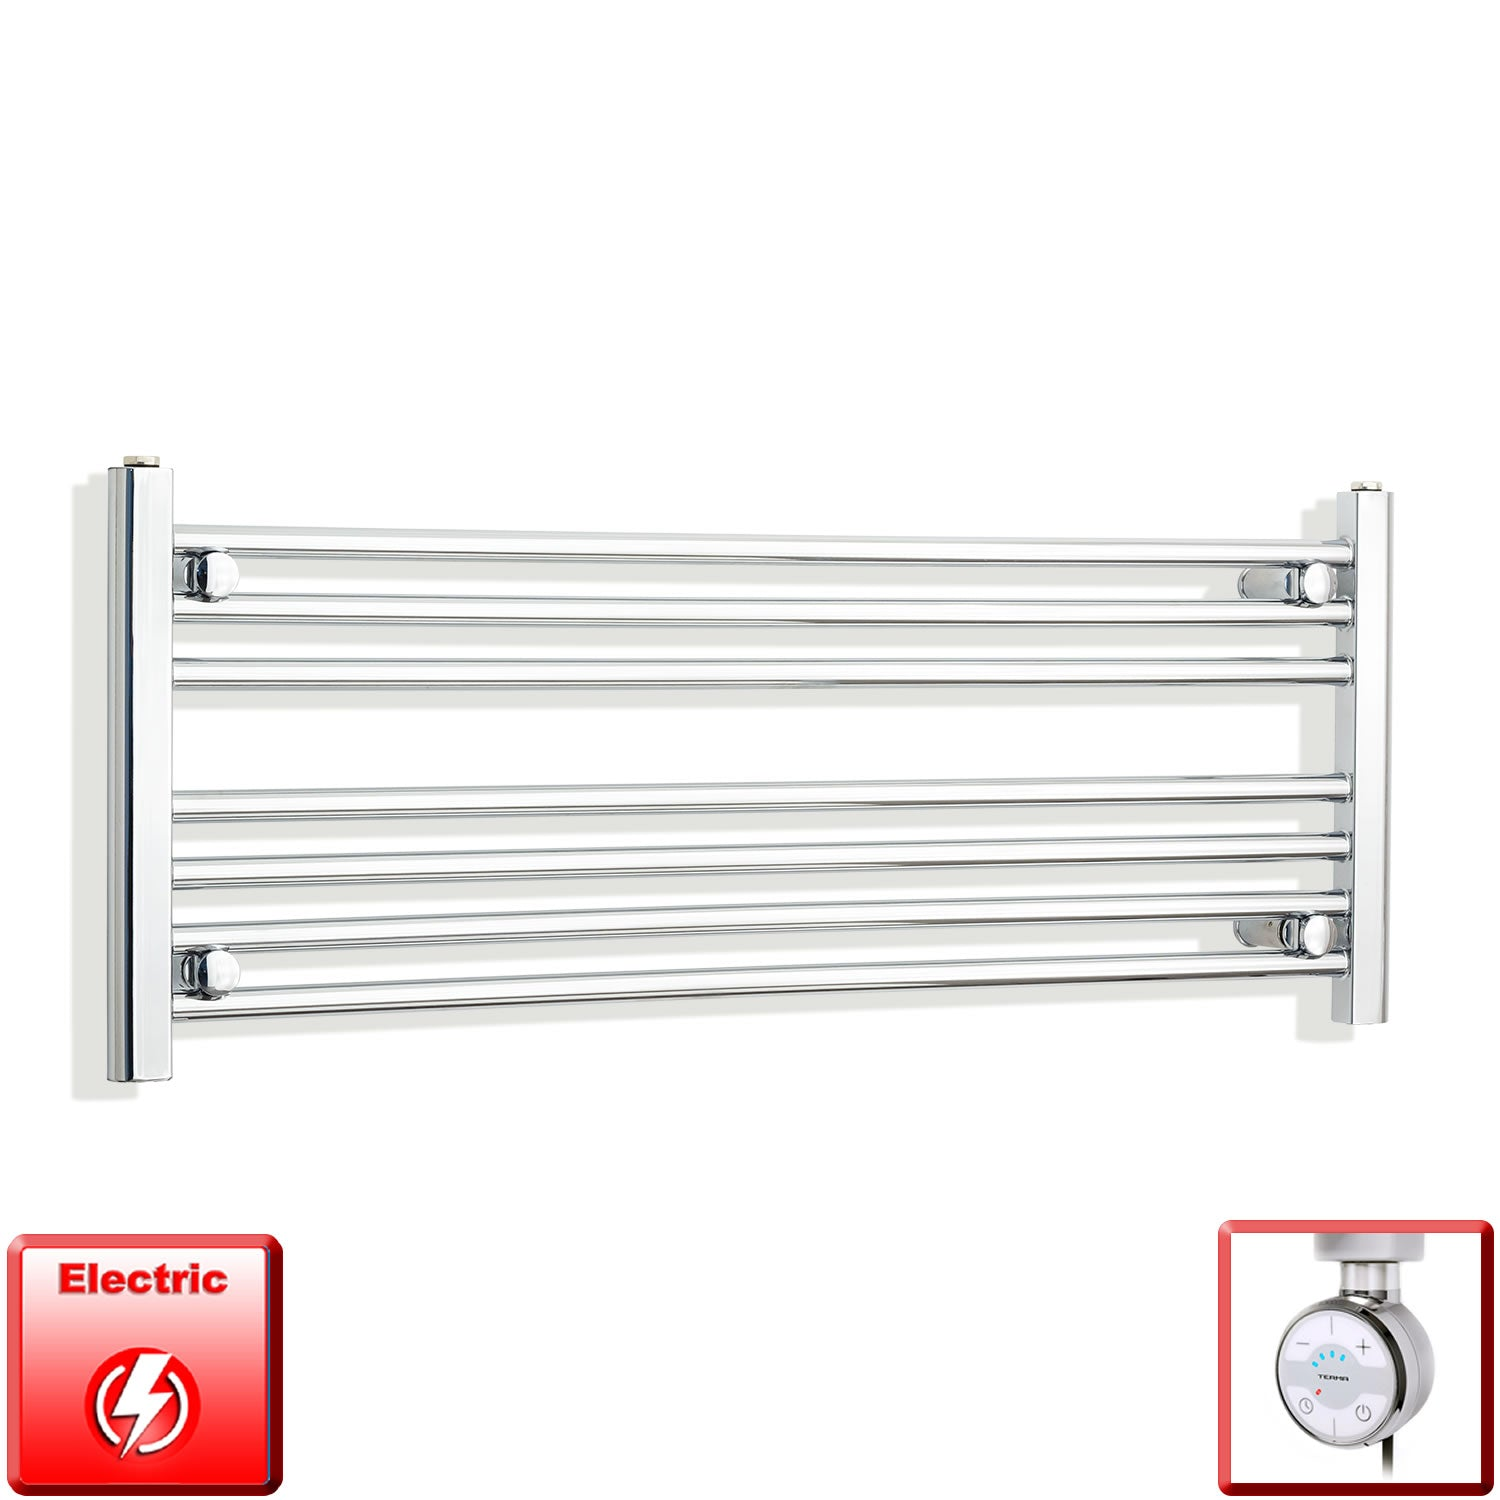 1200mm Wide 400mm High Pre-Filled Chrome Electric Towel Rail Radiator With Thermostatic KTX3 Element